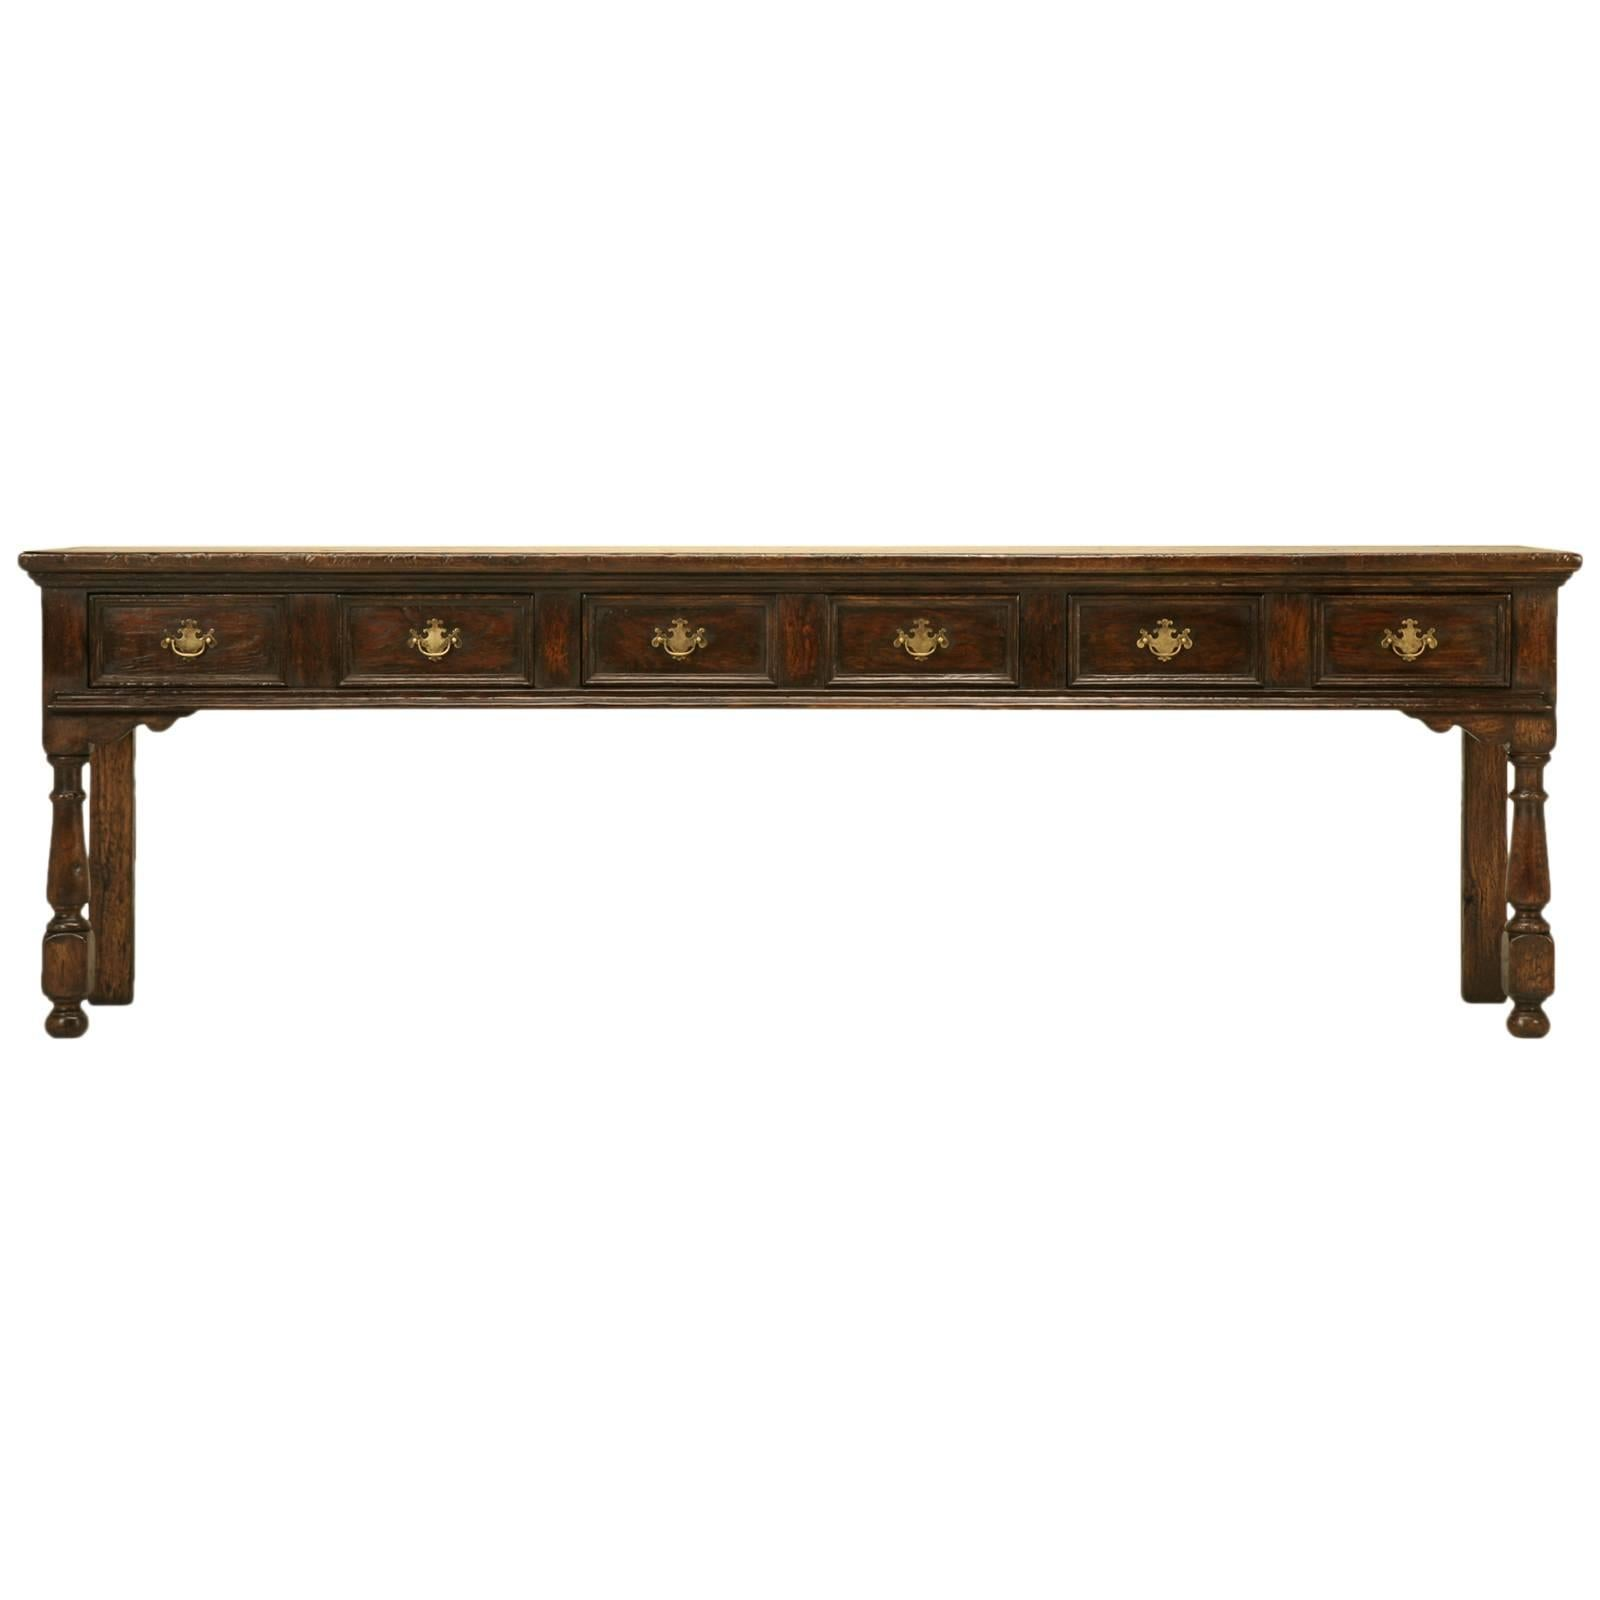 English Oak Sofa or Console Table Hand-Crafted in Chicago by Old Plank